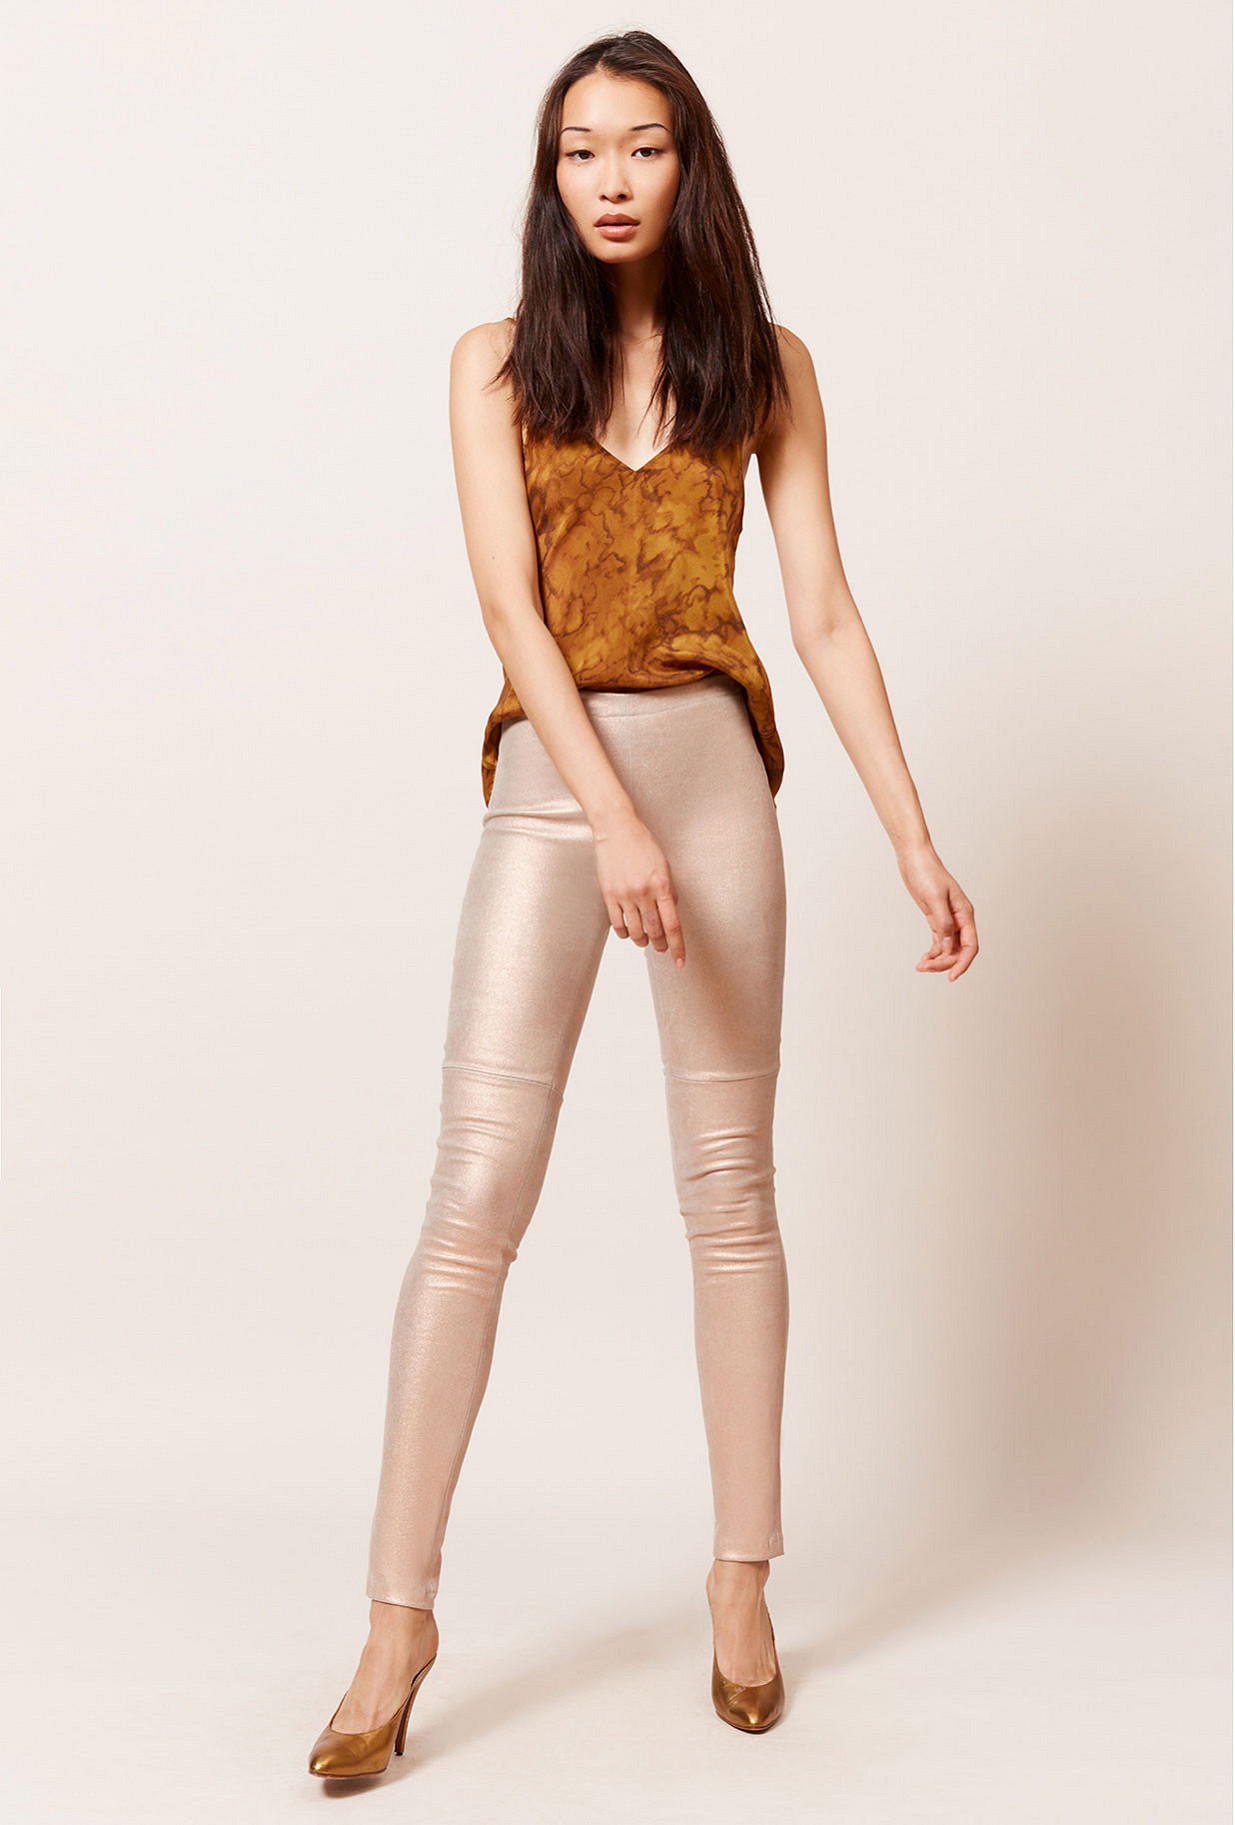 Paris clothes store Legging Esther french designer fashion Paris